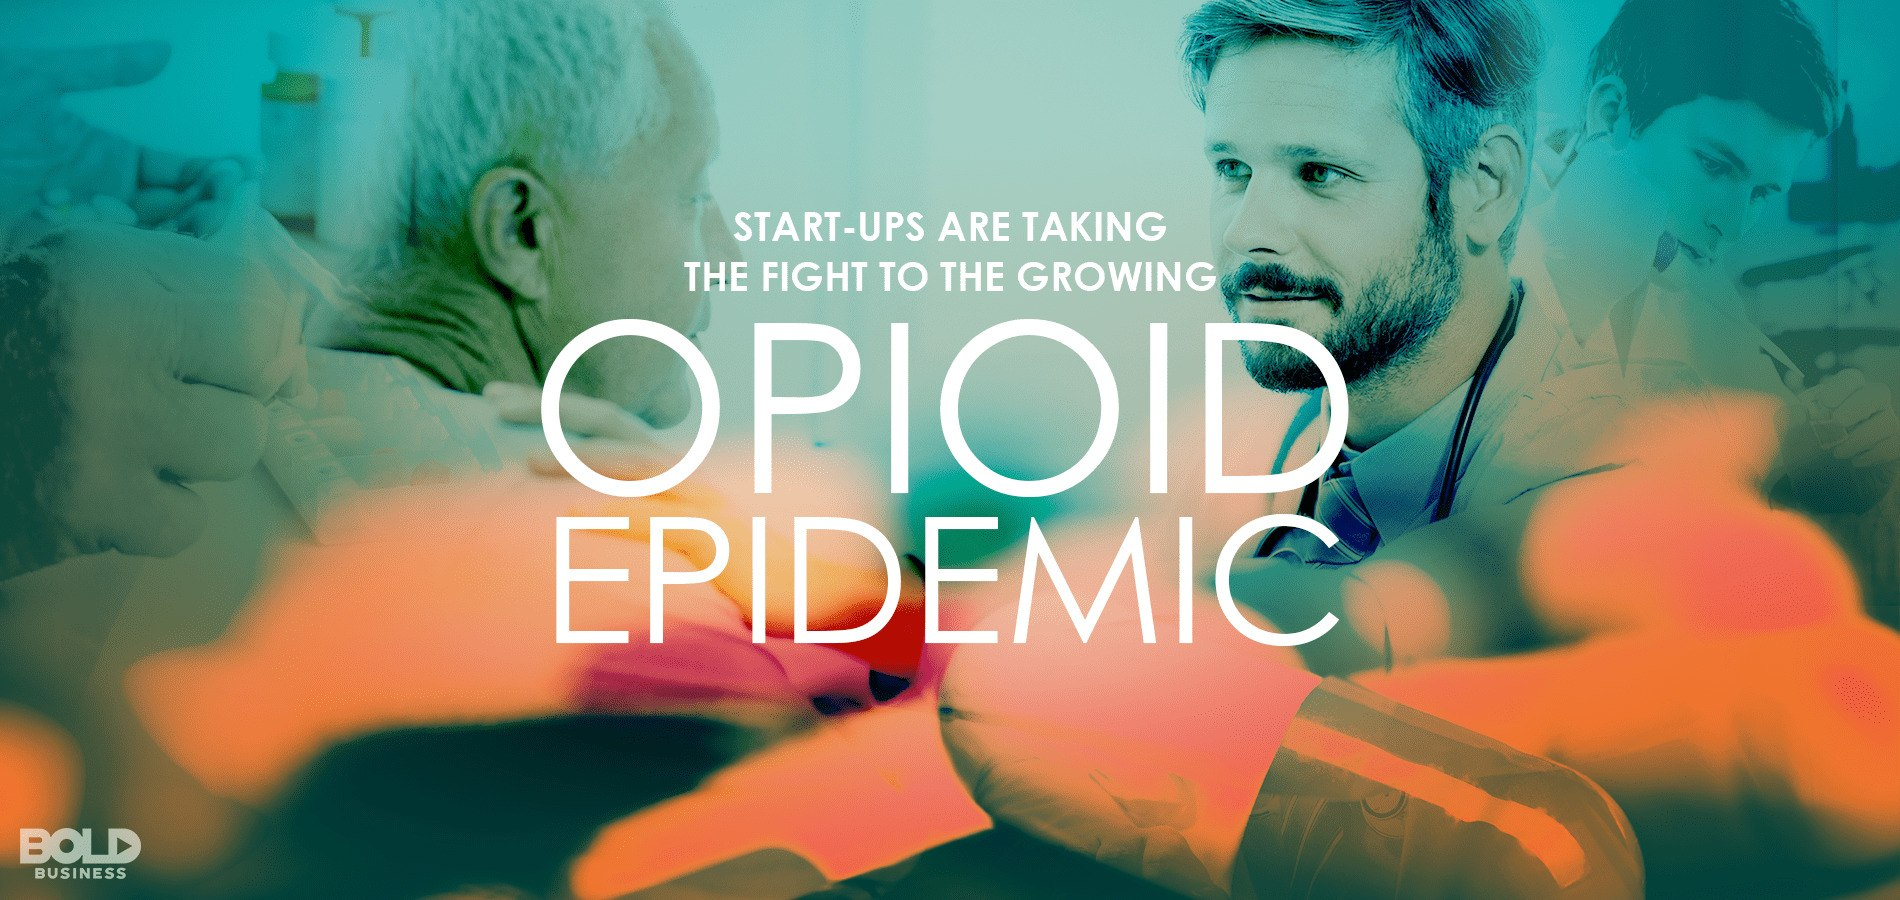 a photo collage of faces with text that says start up companies are fighting the Opioid Epidemic amid the fact that organizations fighting opioid epidemic are here